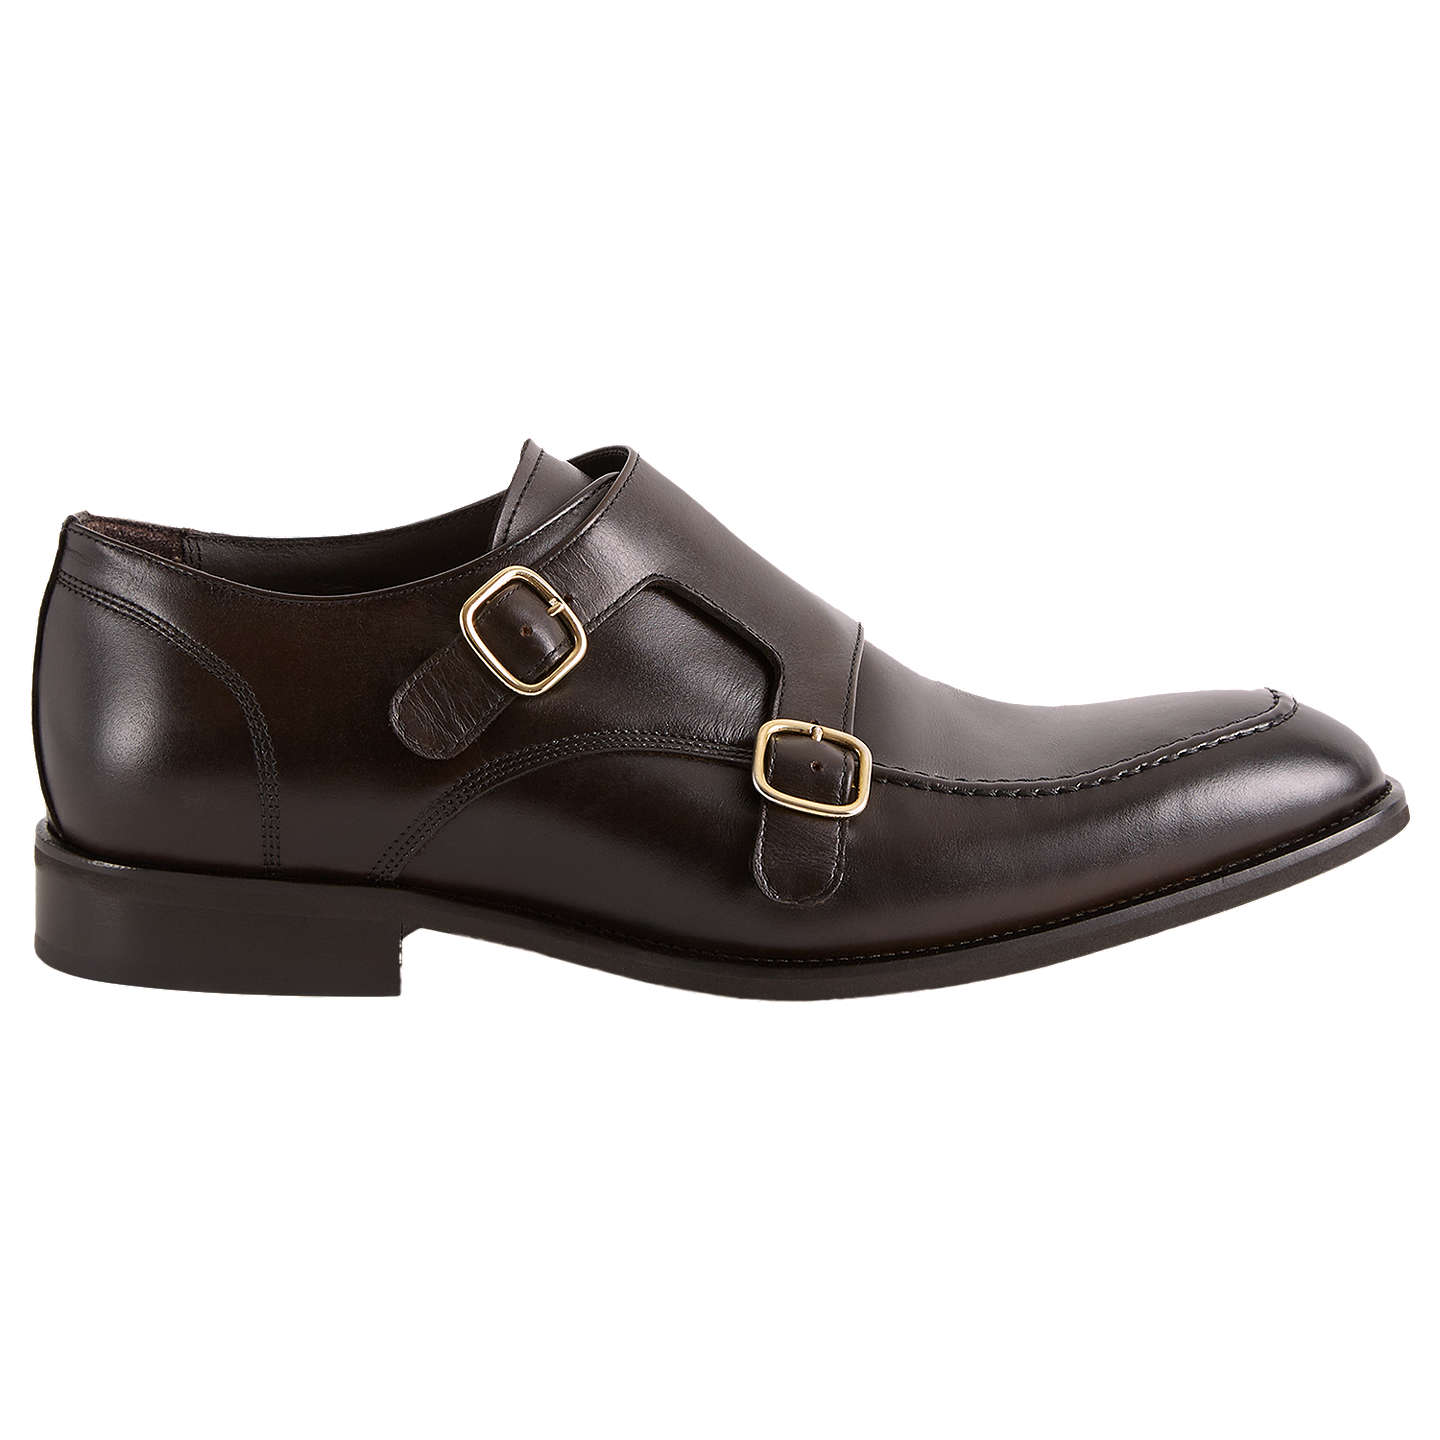 Rilmont - Double Monk Strap Shoes in Dark Brown, Mens, Size 10 Reiss